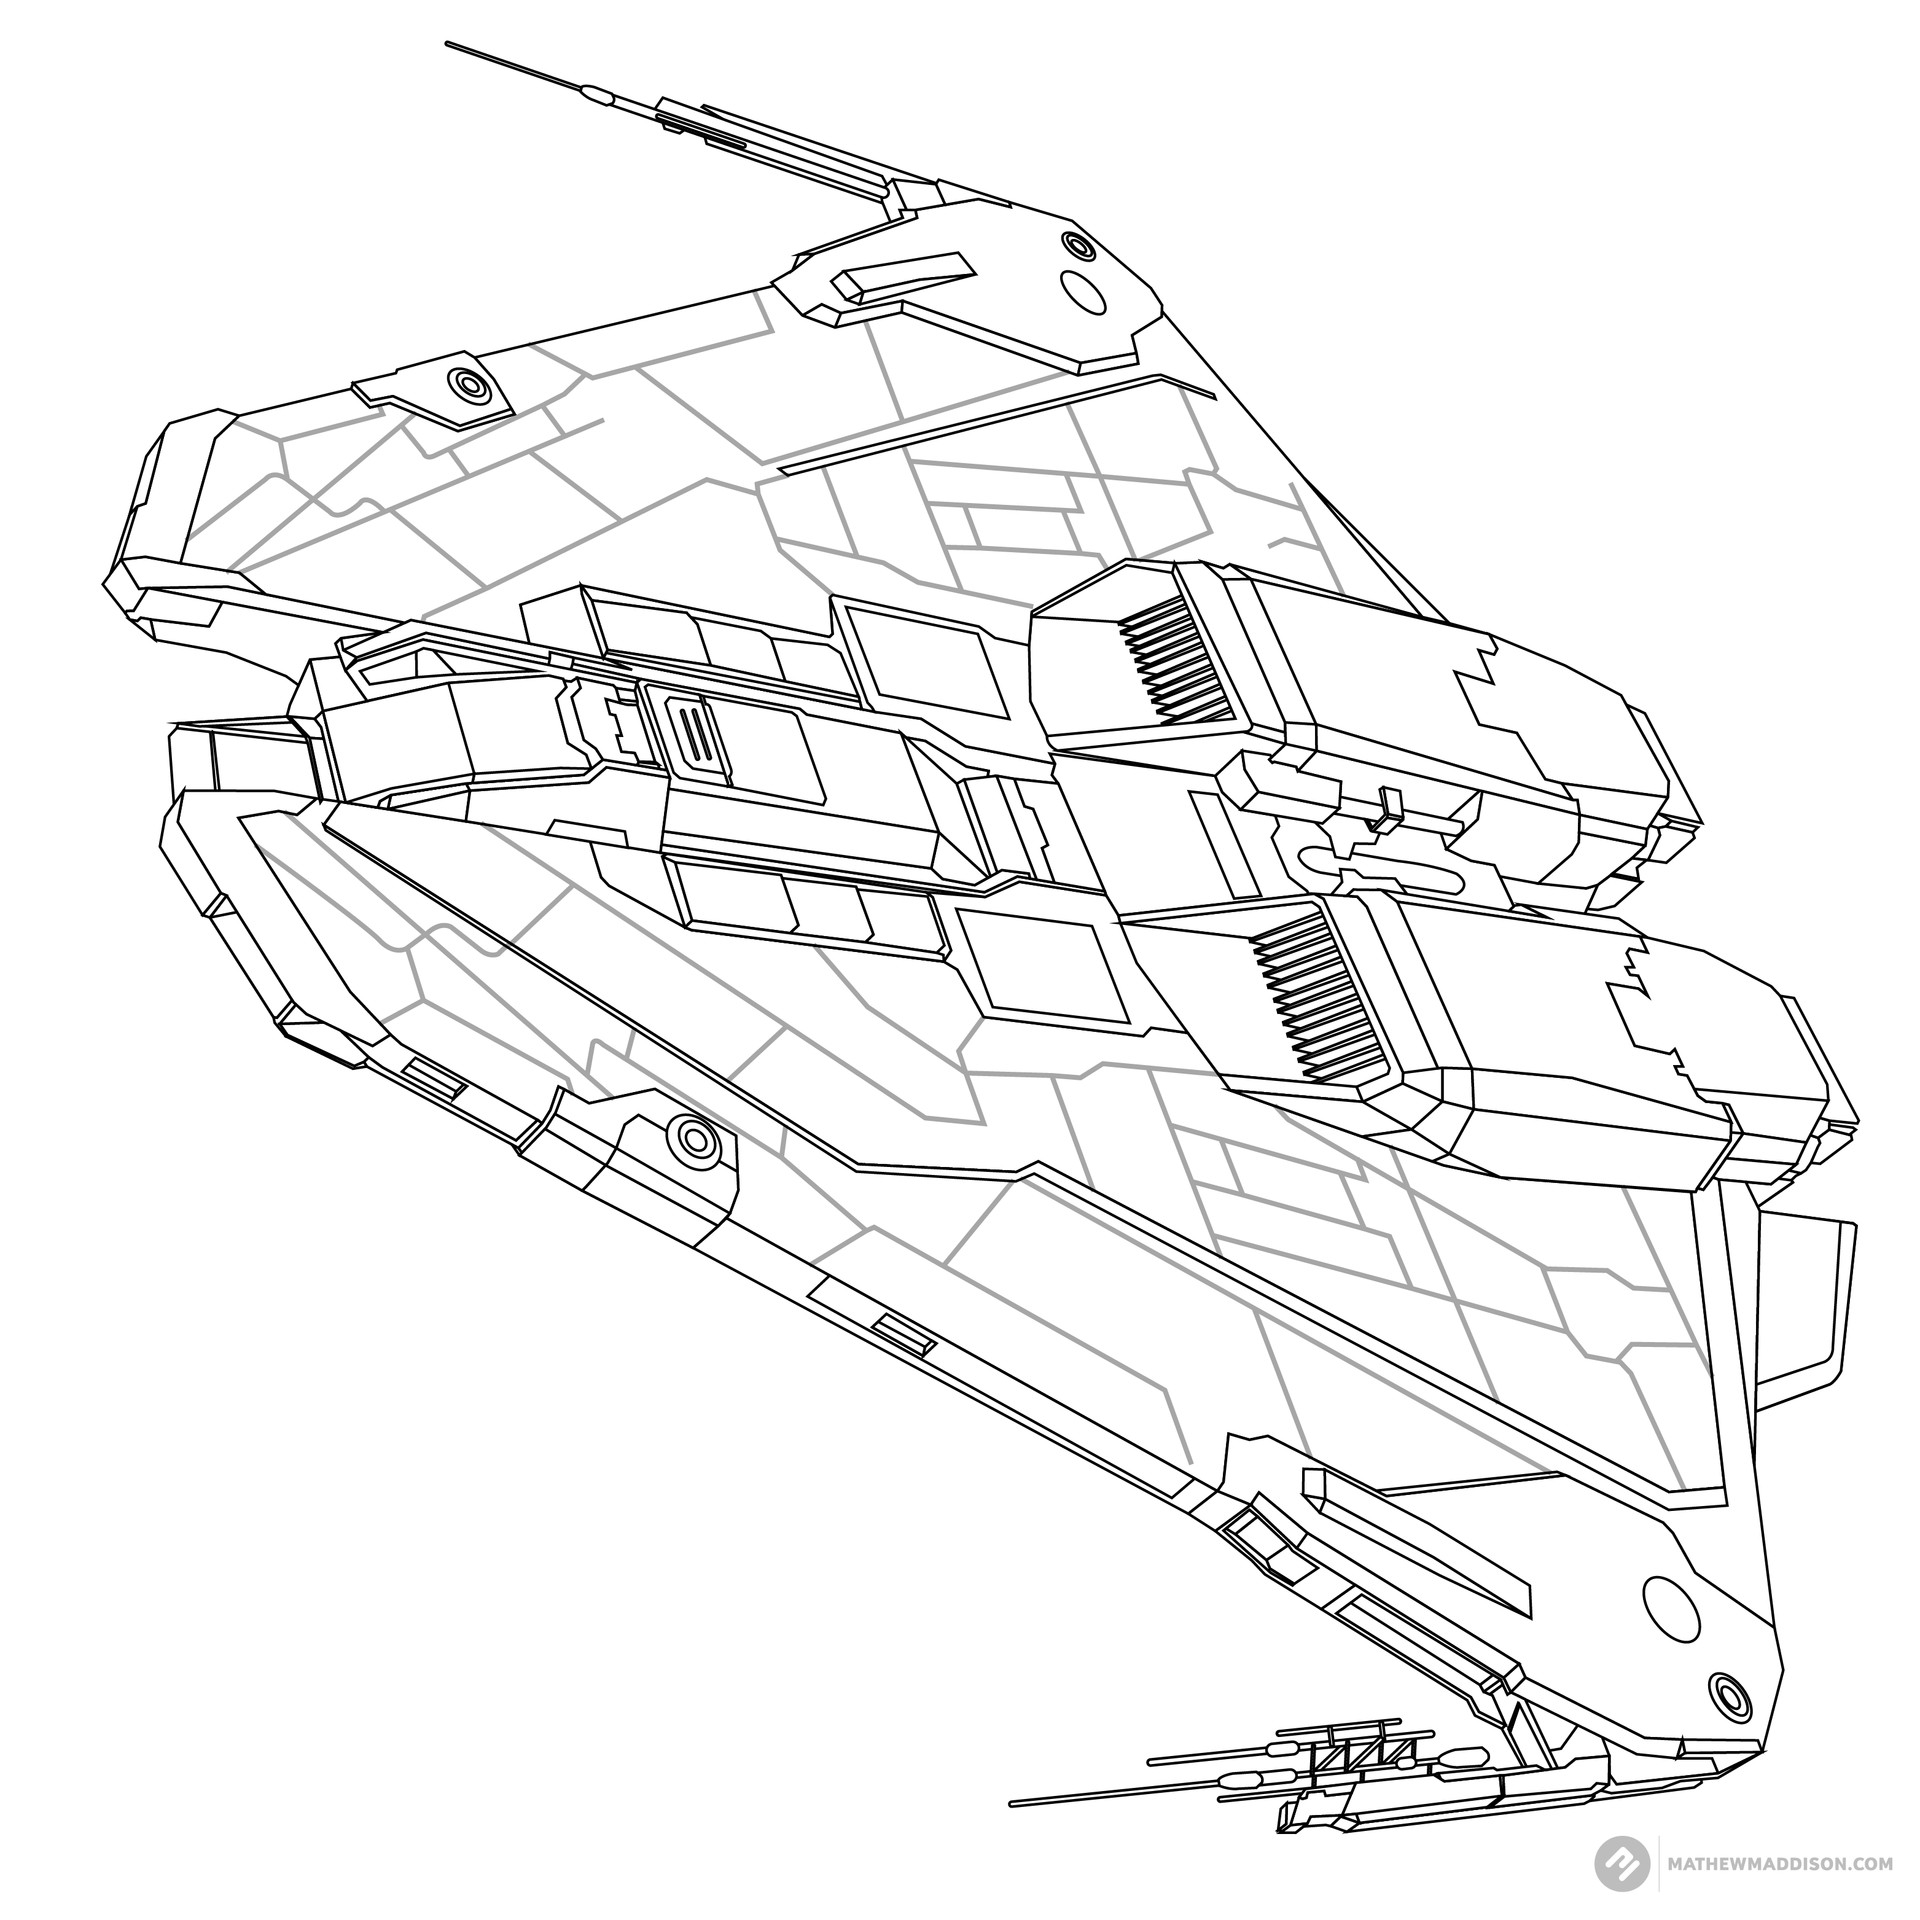 Mathew maddison elite ship no colours by mathew maddsion 06